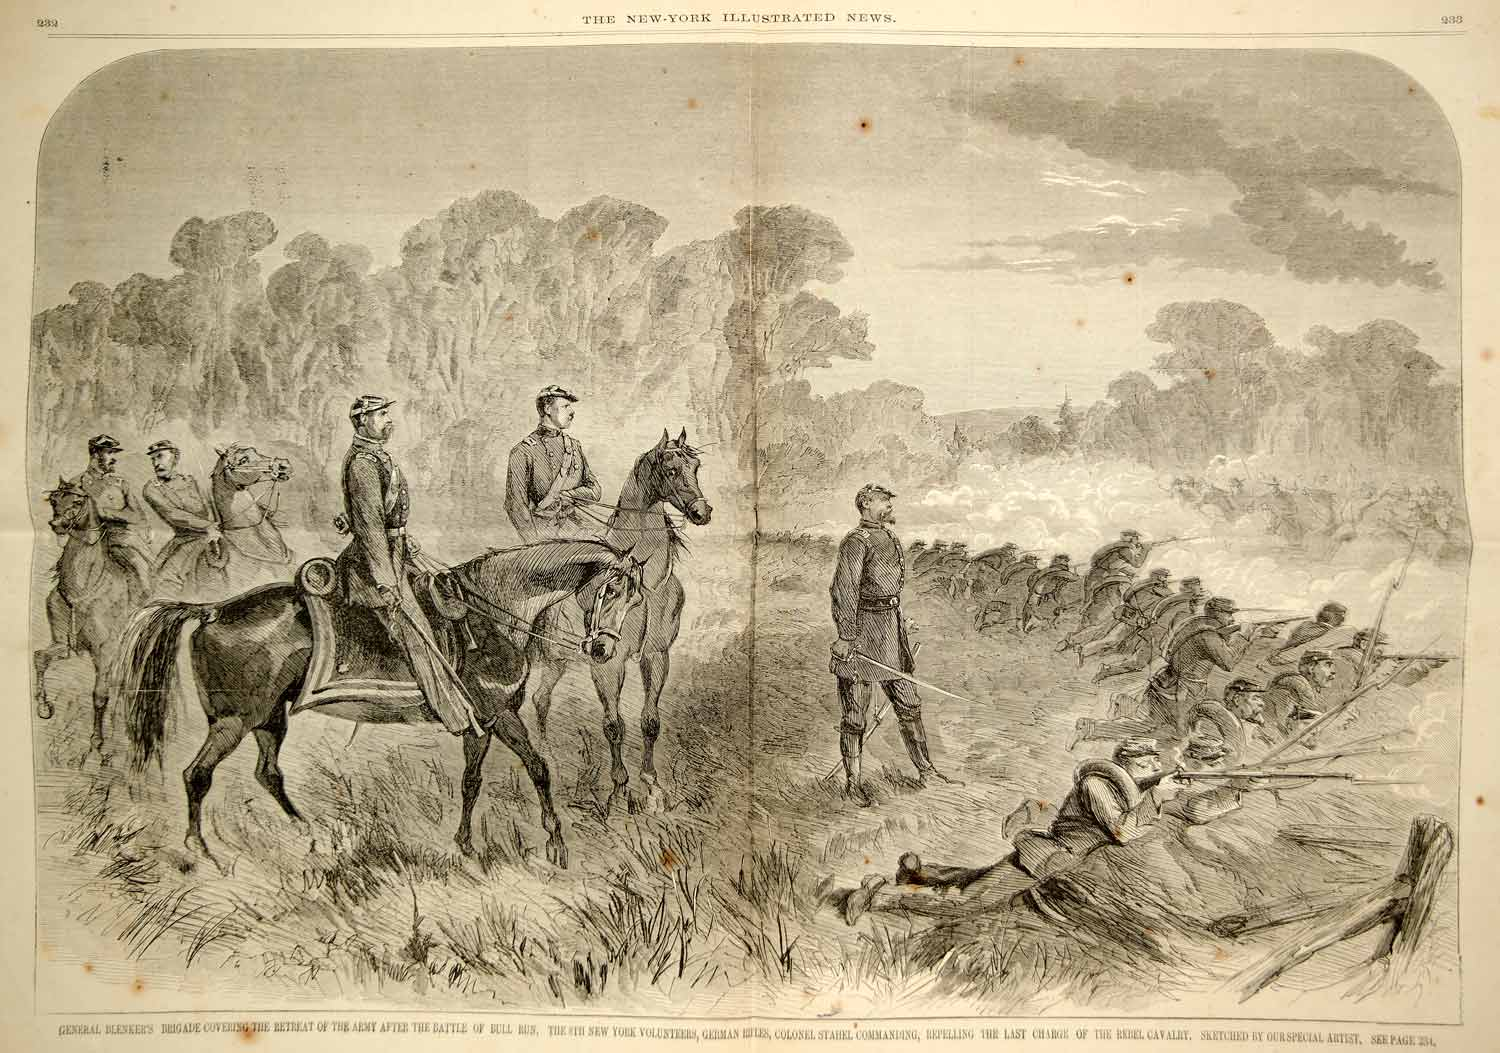 1861 Wood Engraving First Battle Bull Run Manassas Union Retreat Civil War NYN1